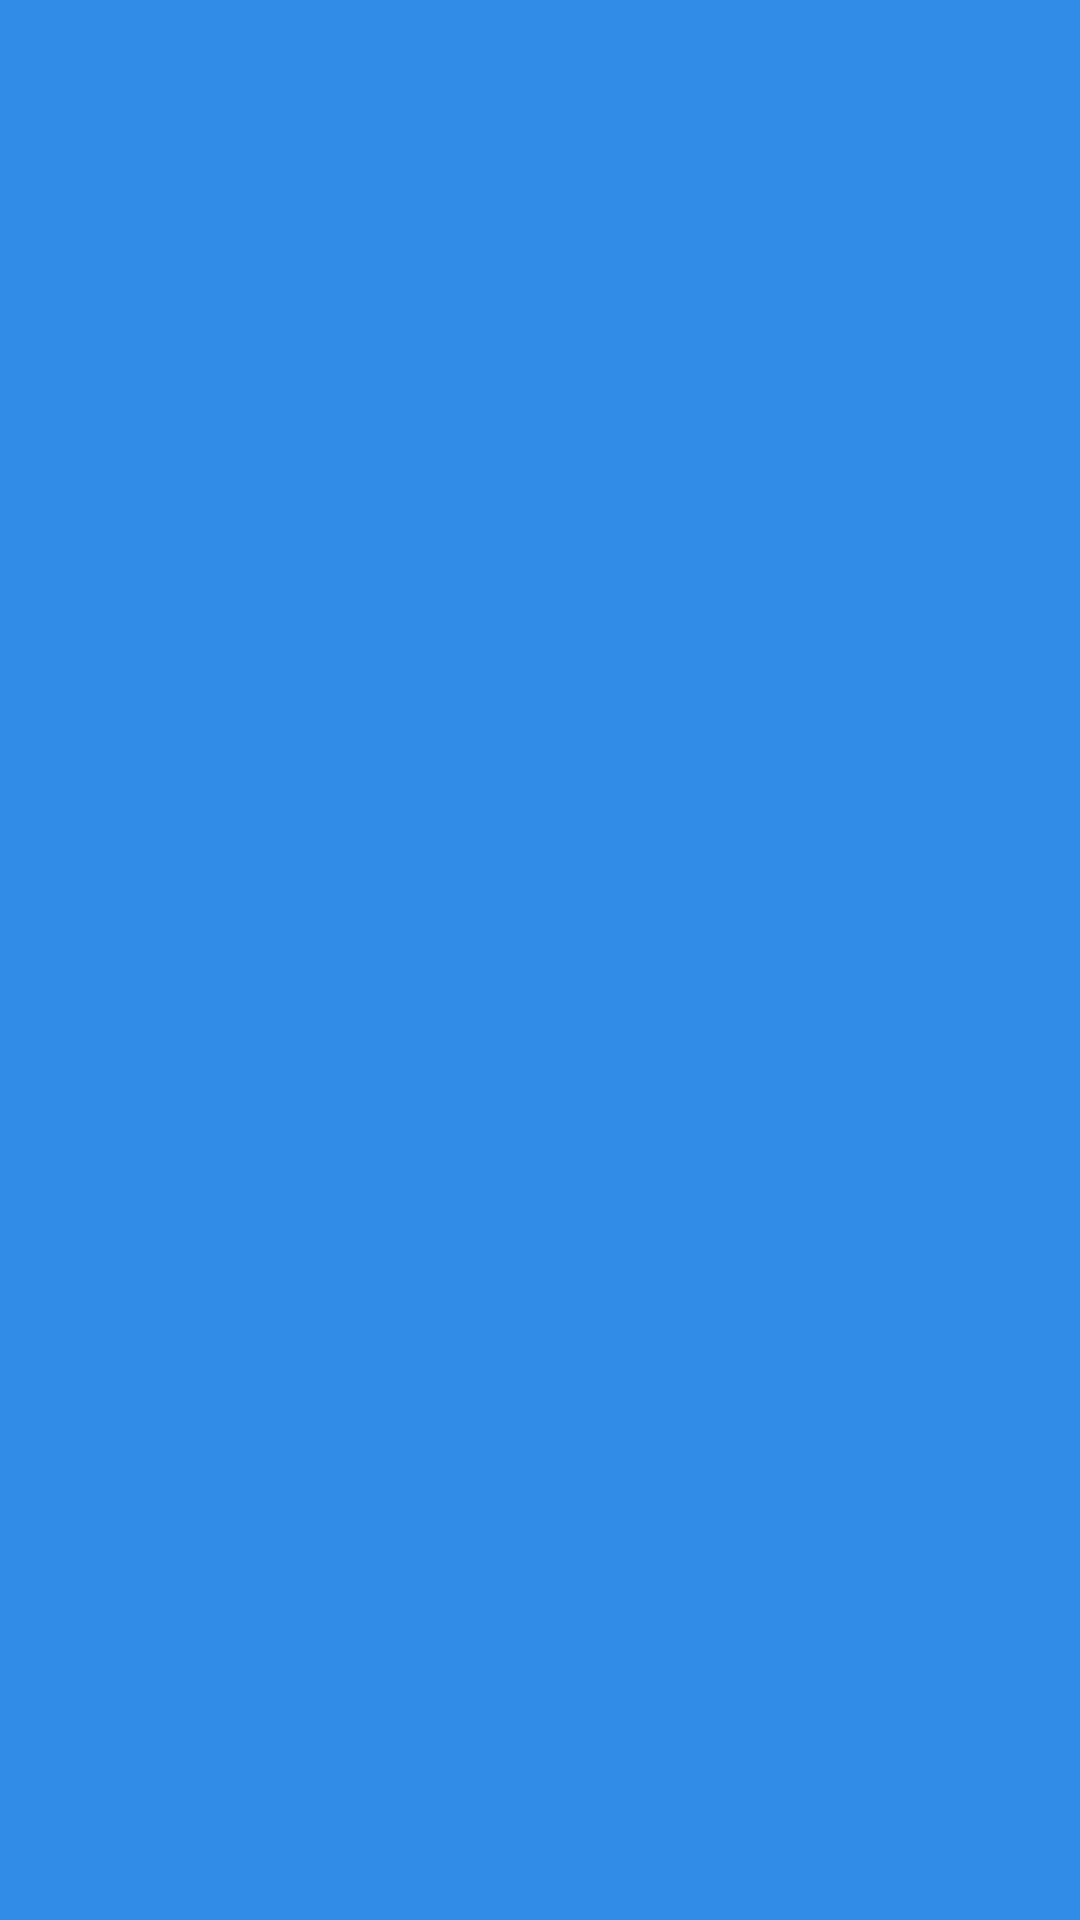 1080x1920 Bleu De France Solid Color Background